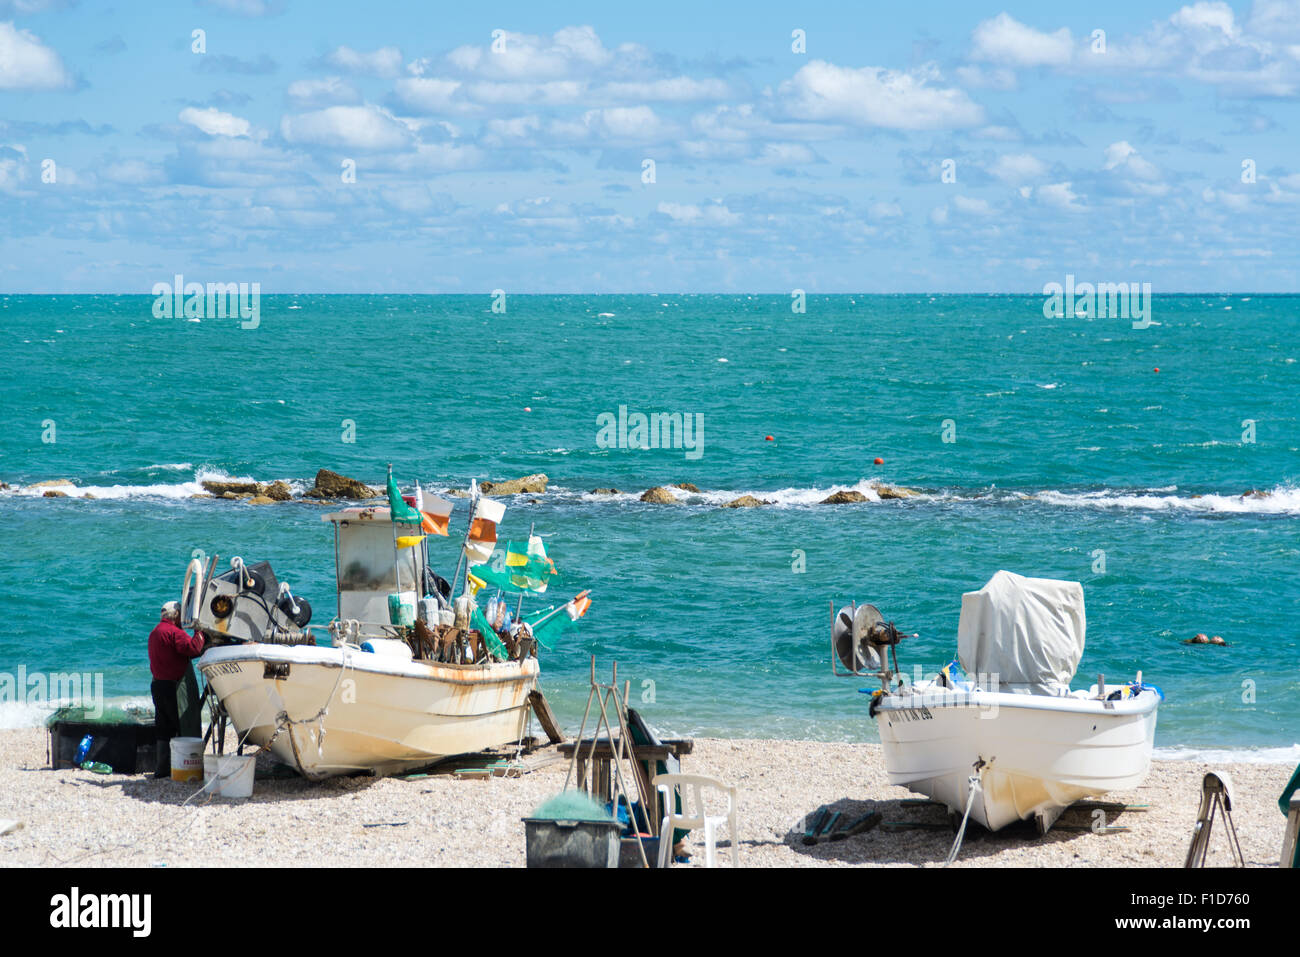 Sailor with Boats in Numana, Marches, Italy - Stock Image